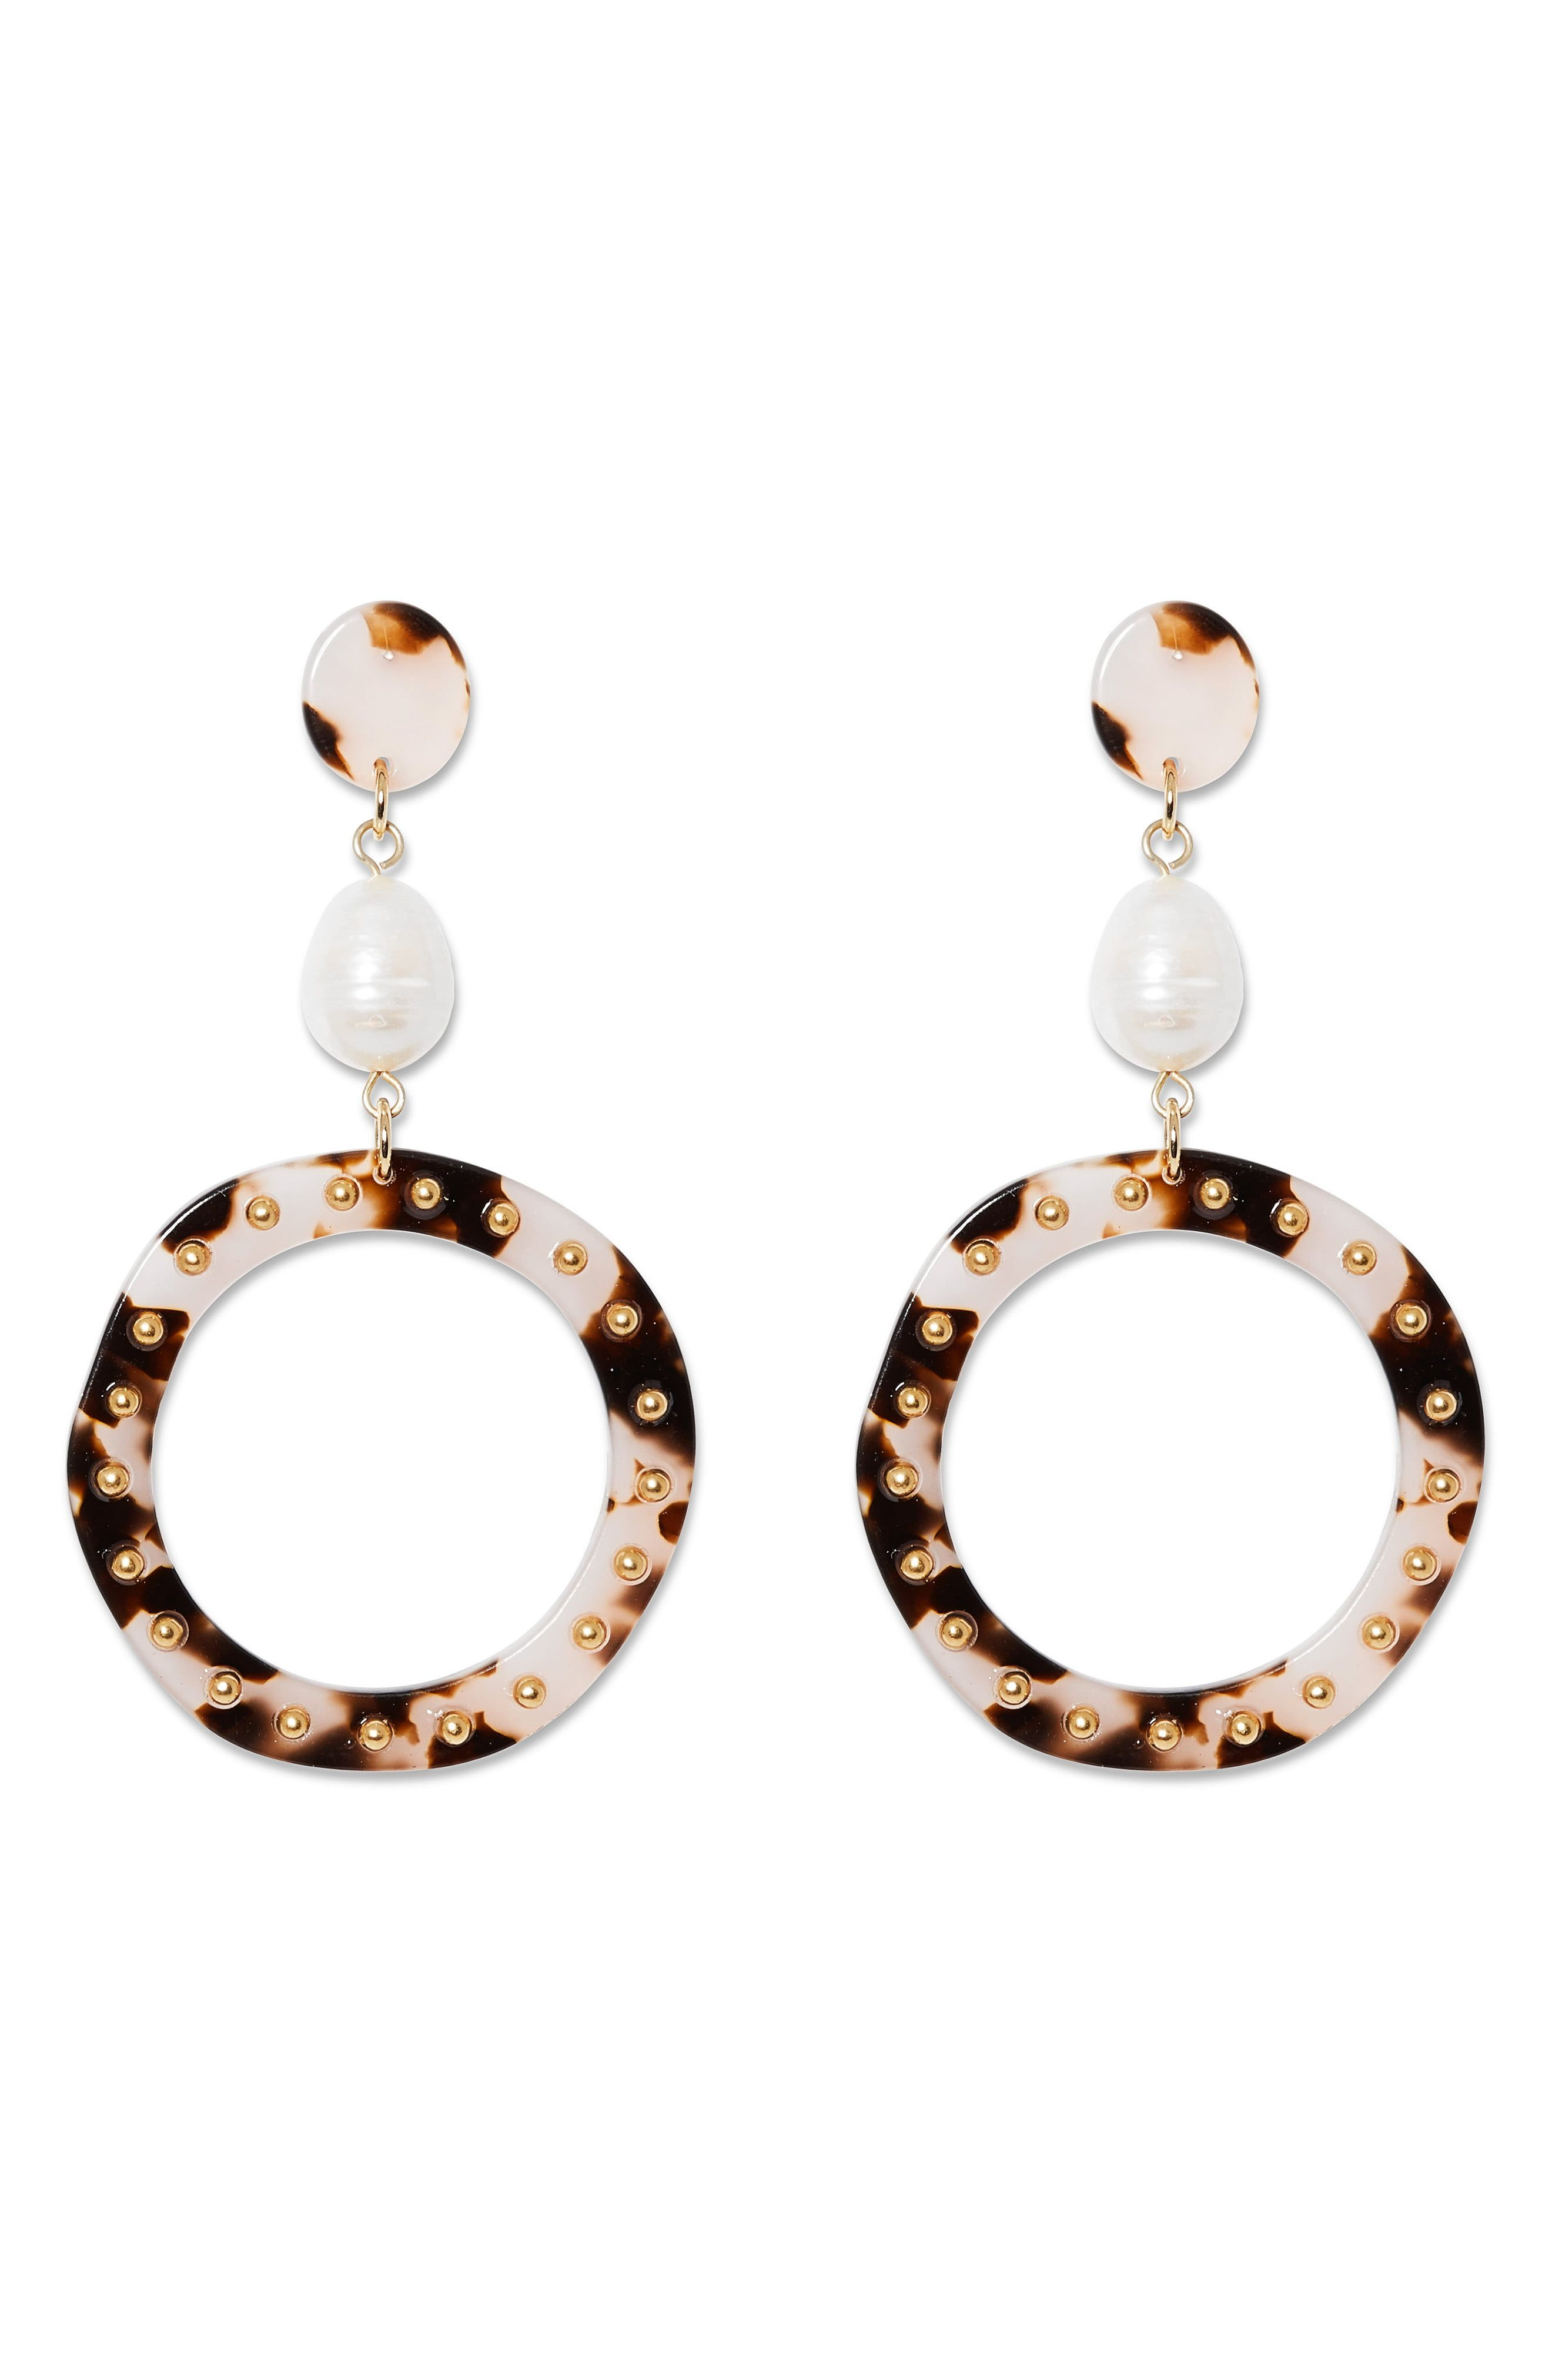 Sole Society 10mm Freshwater Pearl Gypsy Hoop Earrings, Size One Size – Gold/ Ivory/ Fwp/ Rose Dusk at Nordstrom Rack